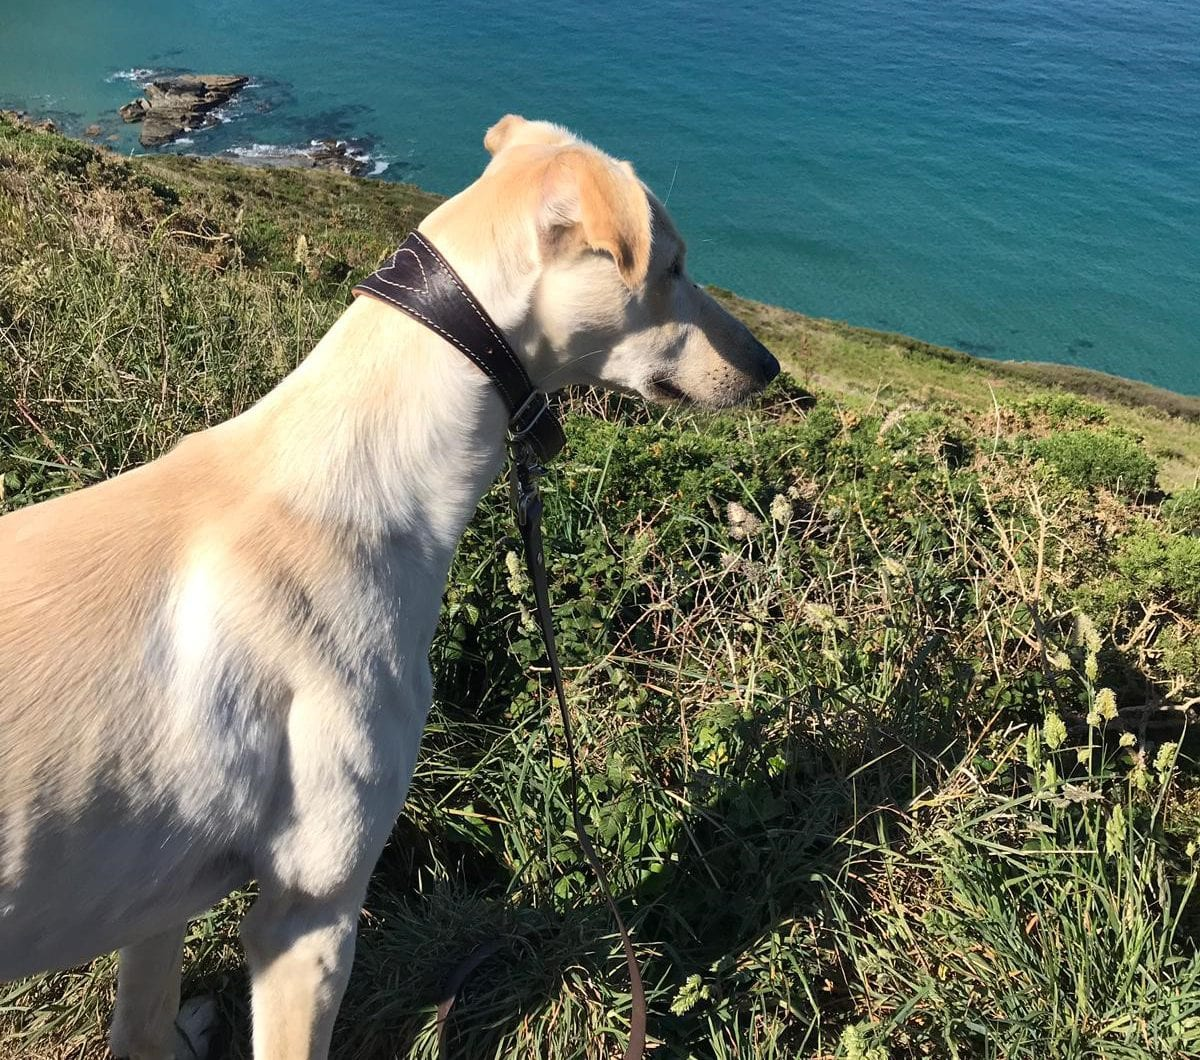 Taking Your Dog on Holiday